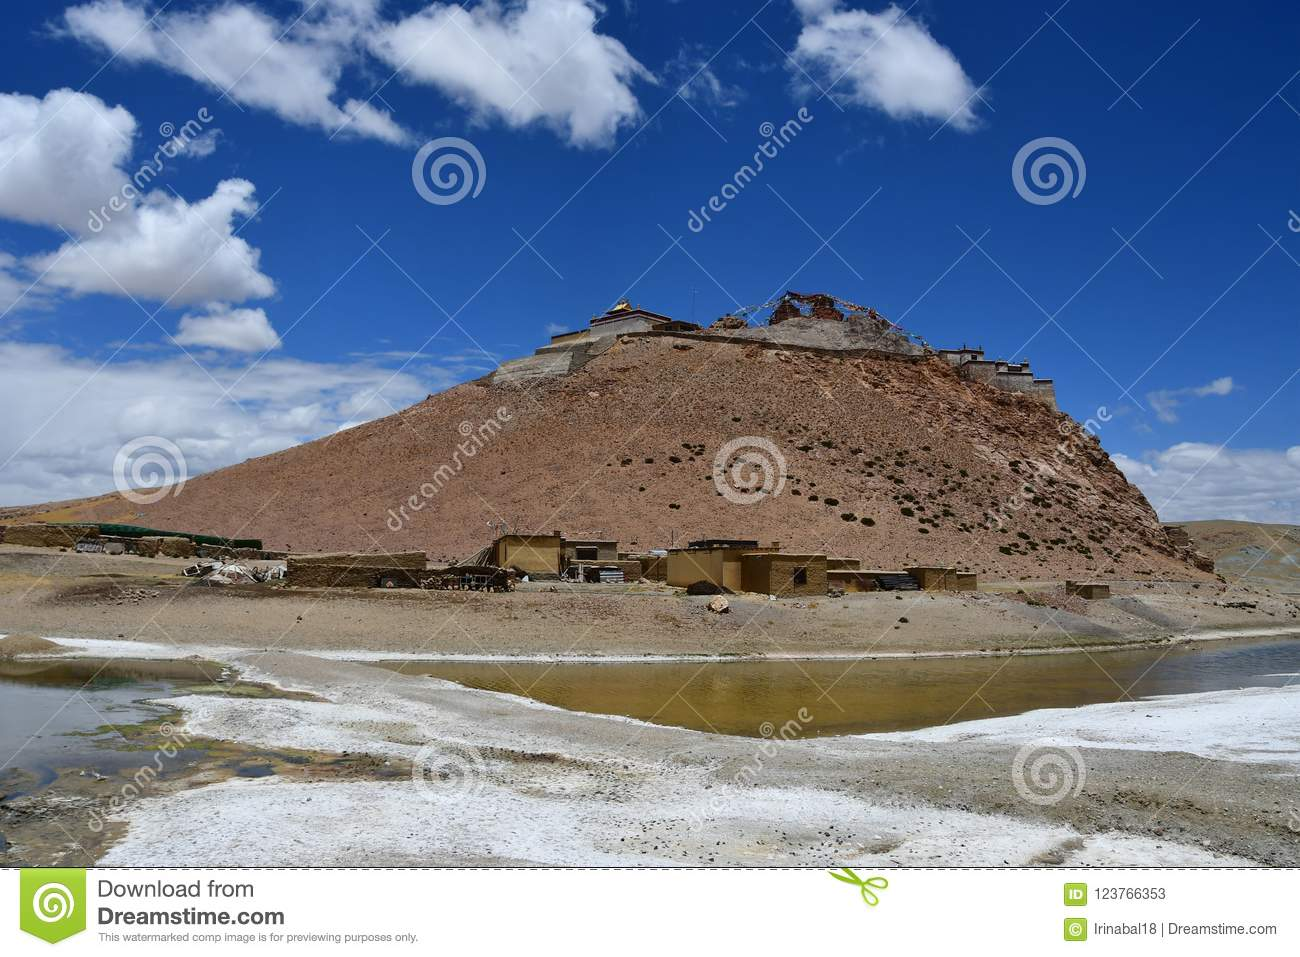 China, Tibet, Chiu Gompa monastery on a hill on the shore of lake Manasarovar